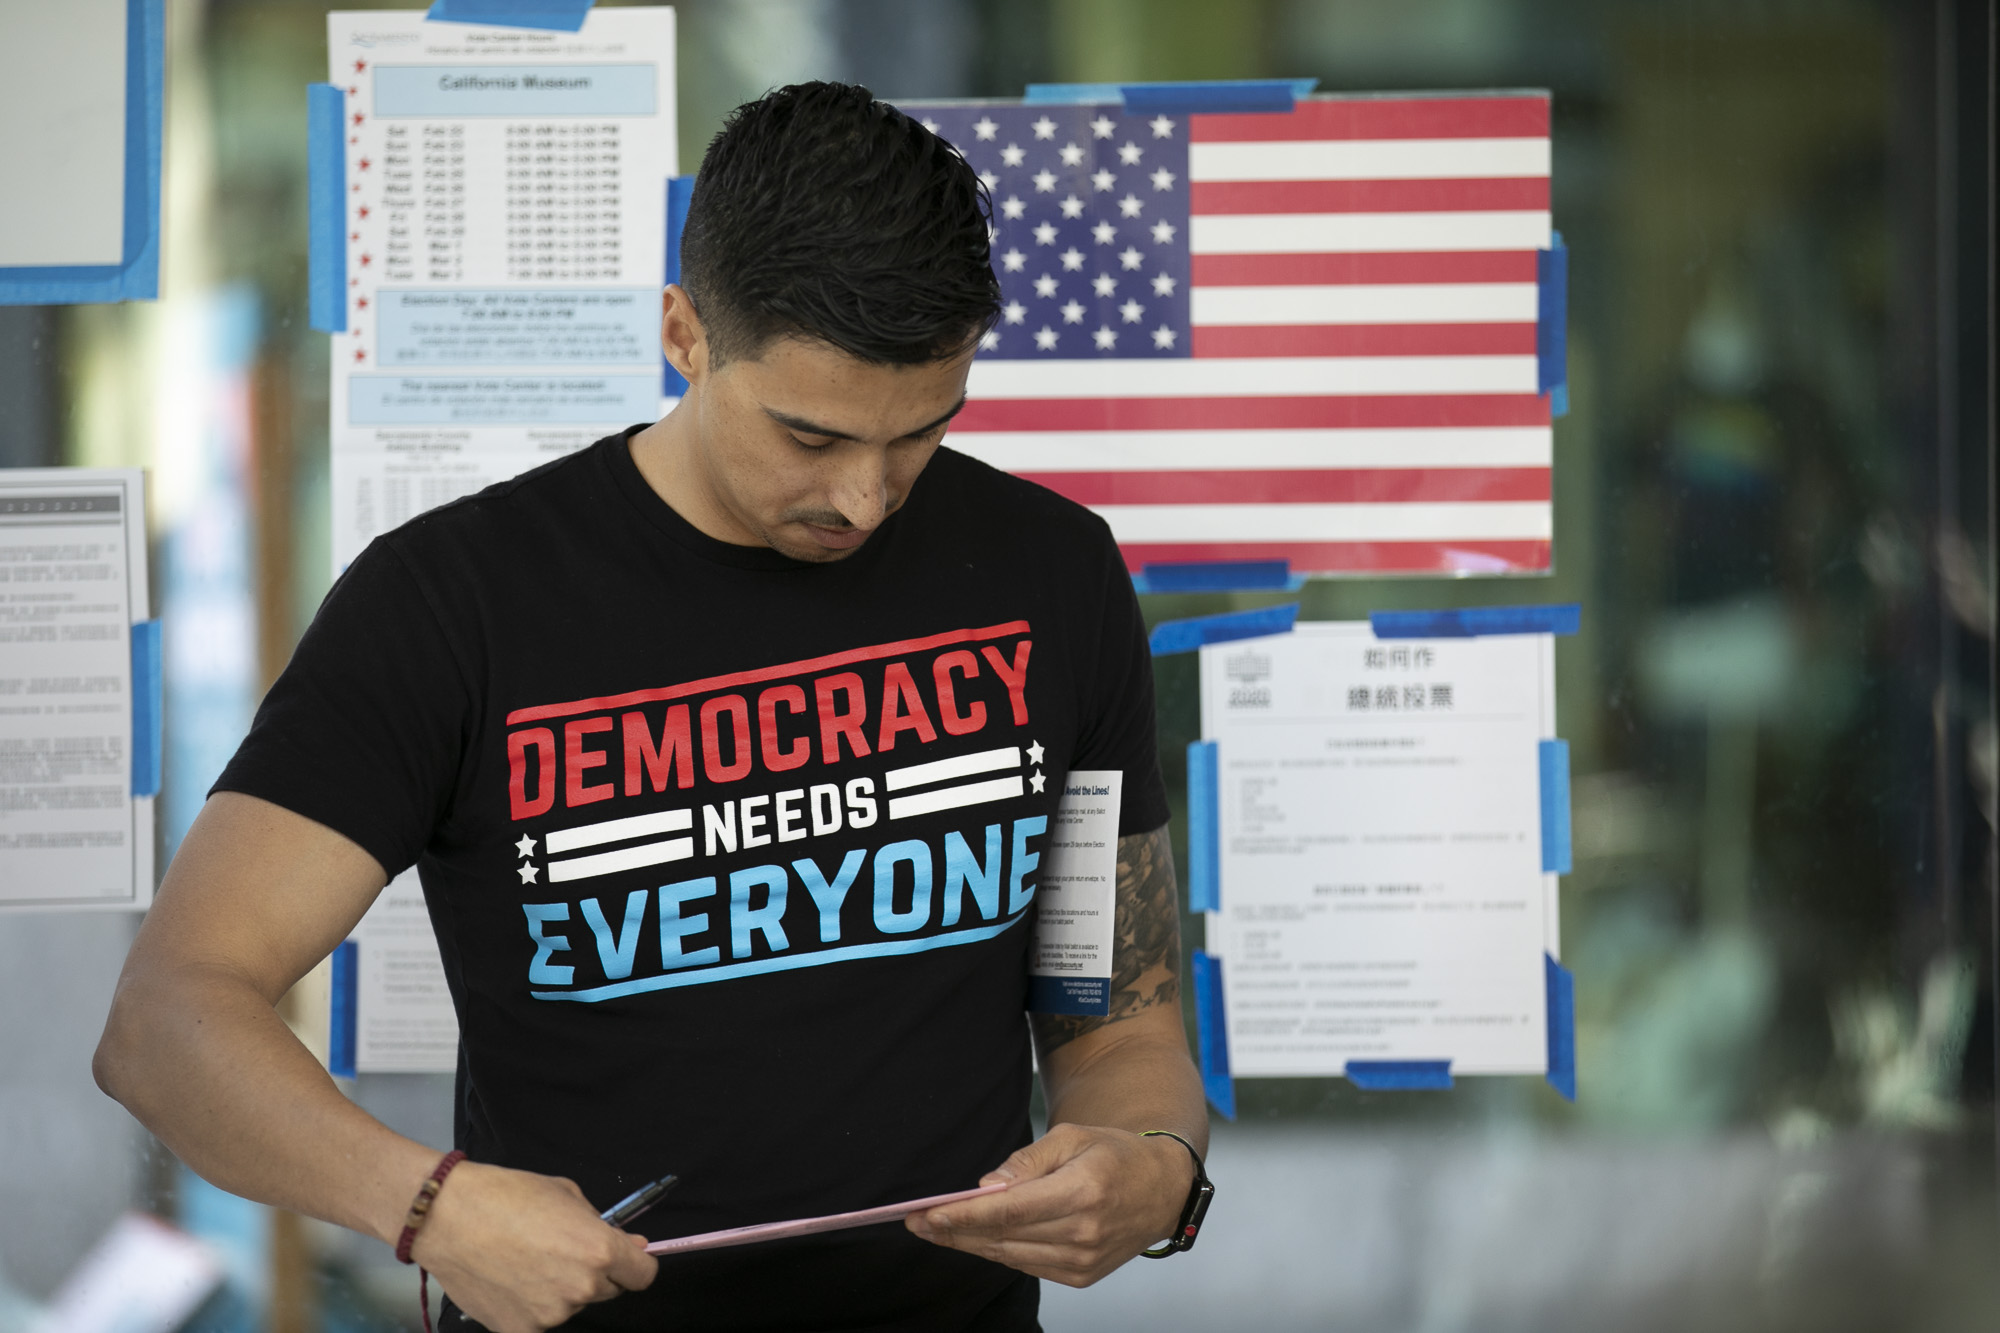 Esteban Nunez seals his vote-by-mail envelope before submitting his ballot for the presidential primary at the California Museum in Sacramento on March 2, 2020. Photo by Anne Wernikoff for CalMatters